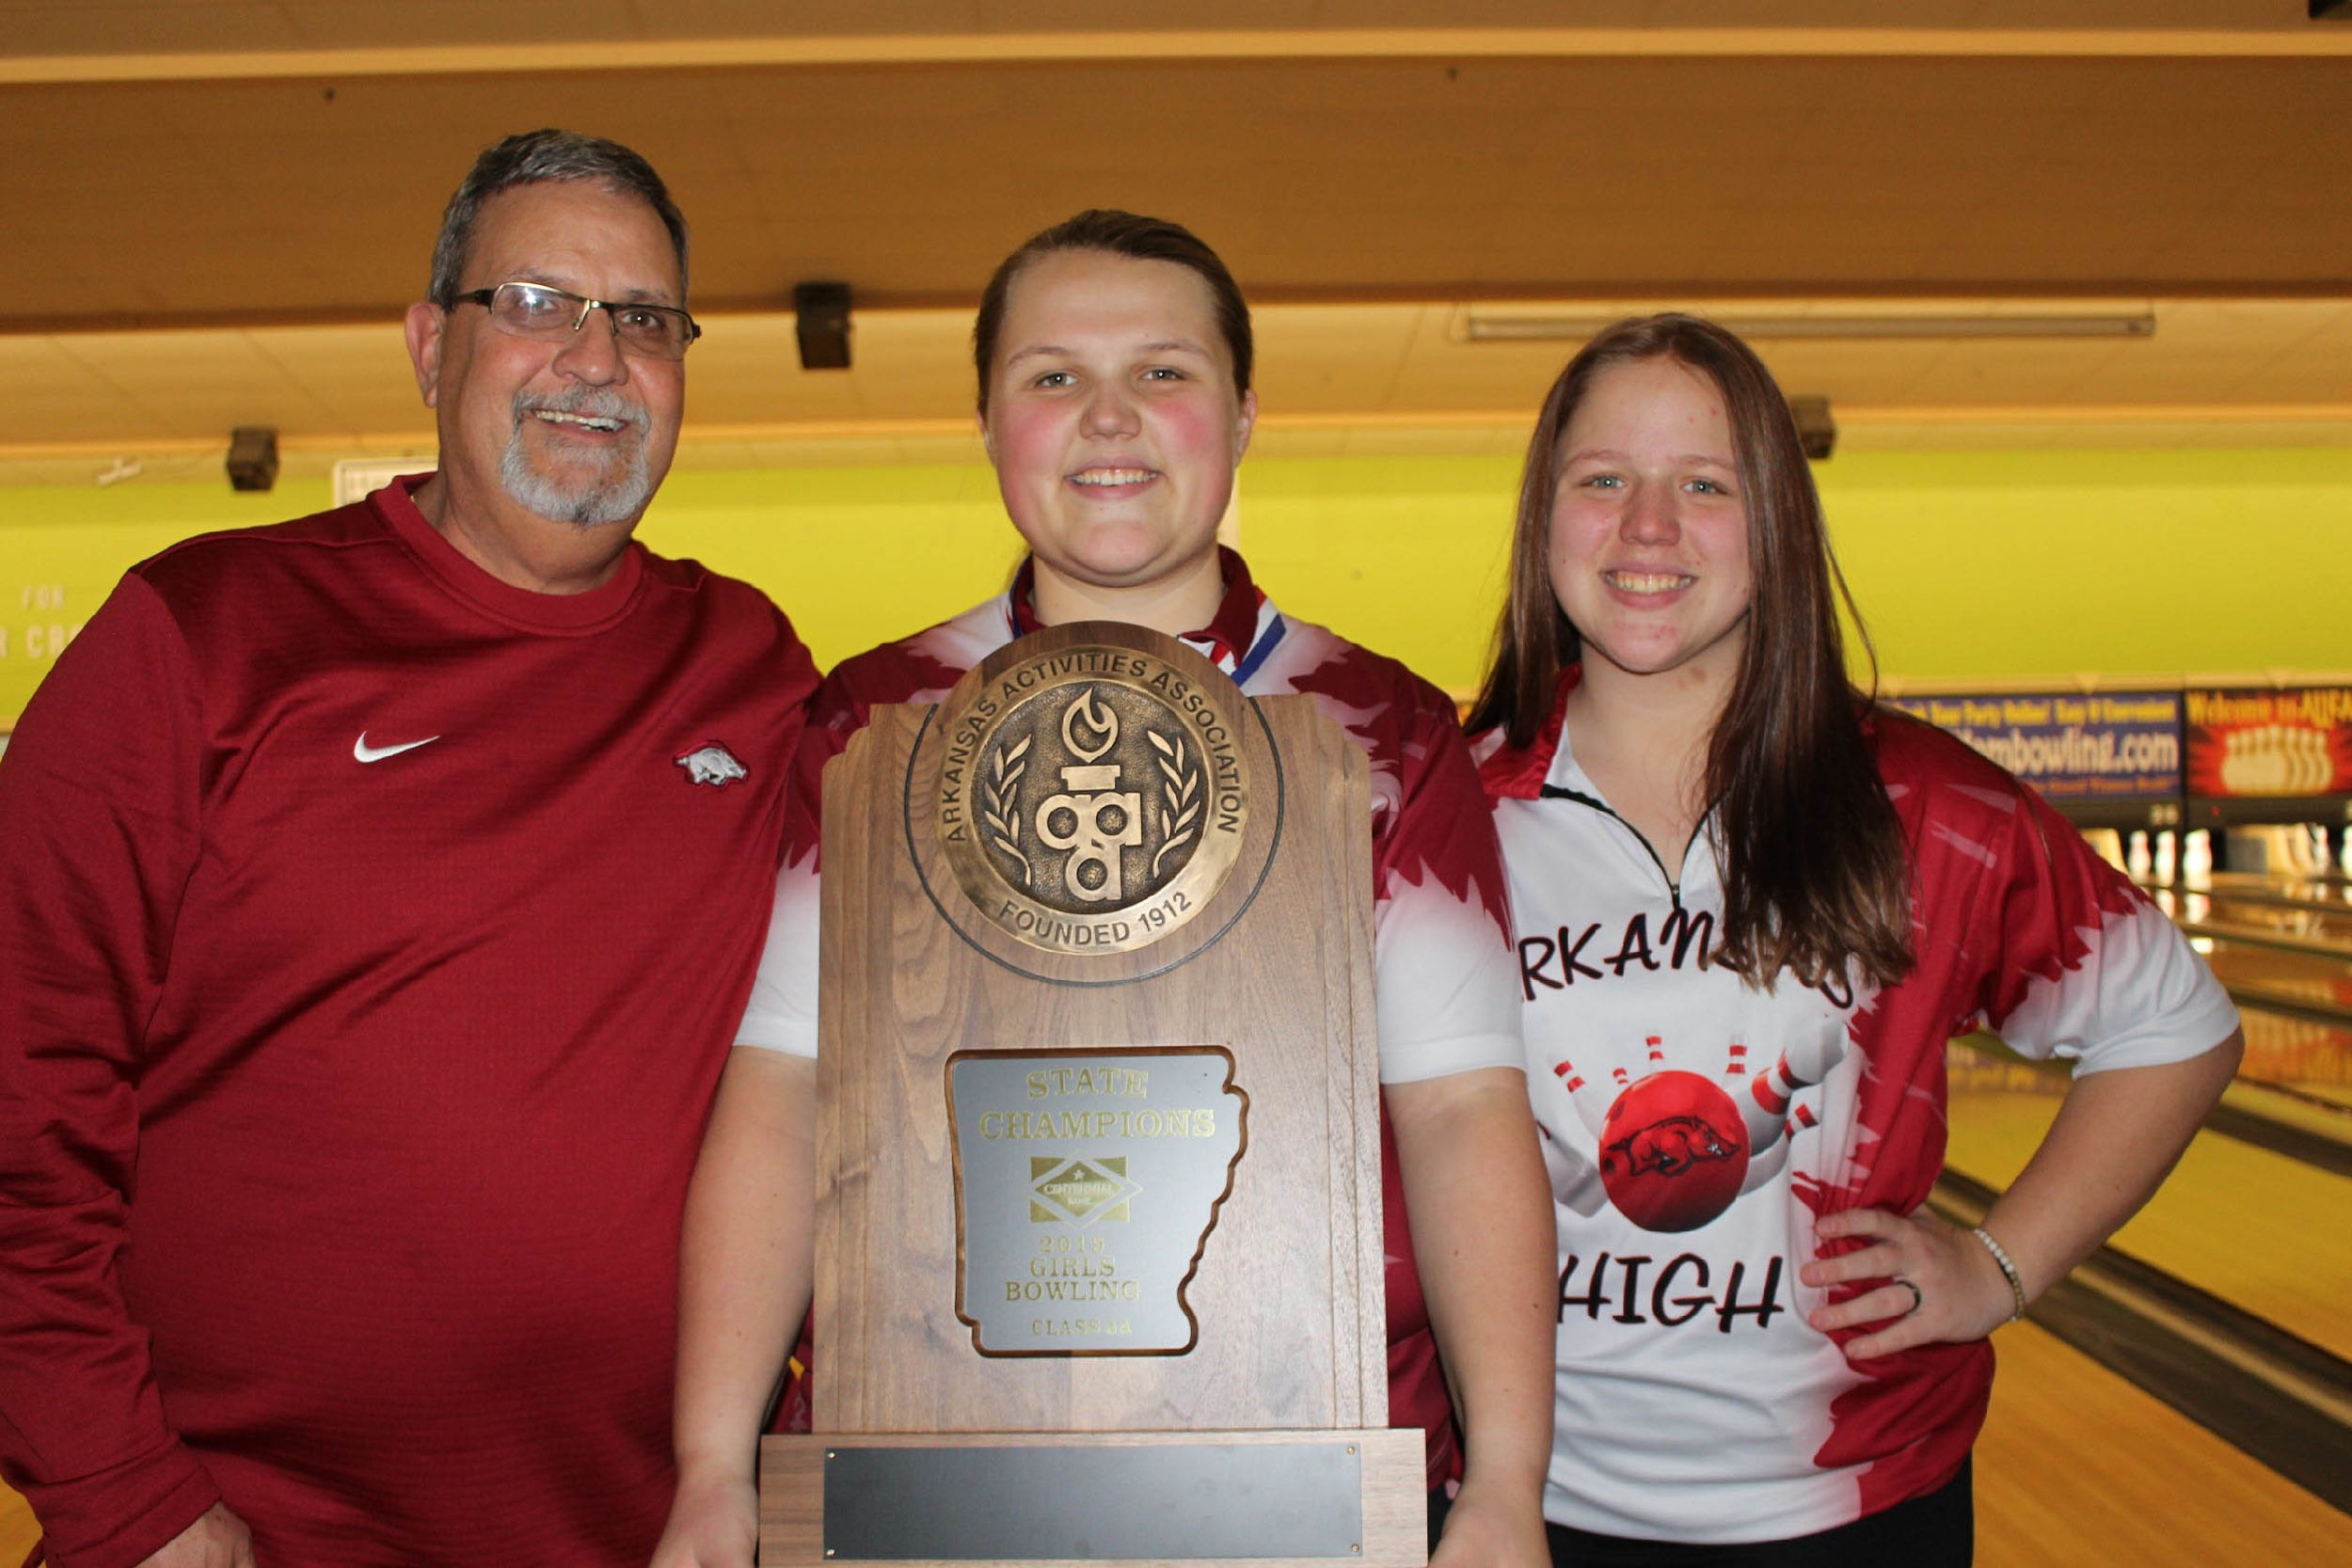 For Linda, one of the best things about bowling is being able to go on this journey with her sister, Tricia, who is a junior at Arkansas High School. Here, the girls are pictured with Linda's coach, Roger Rico.